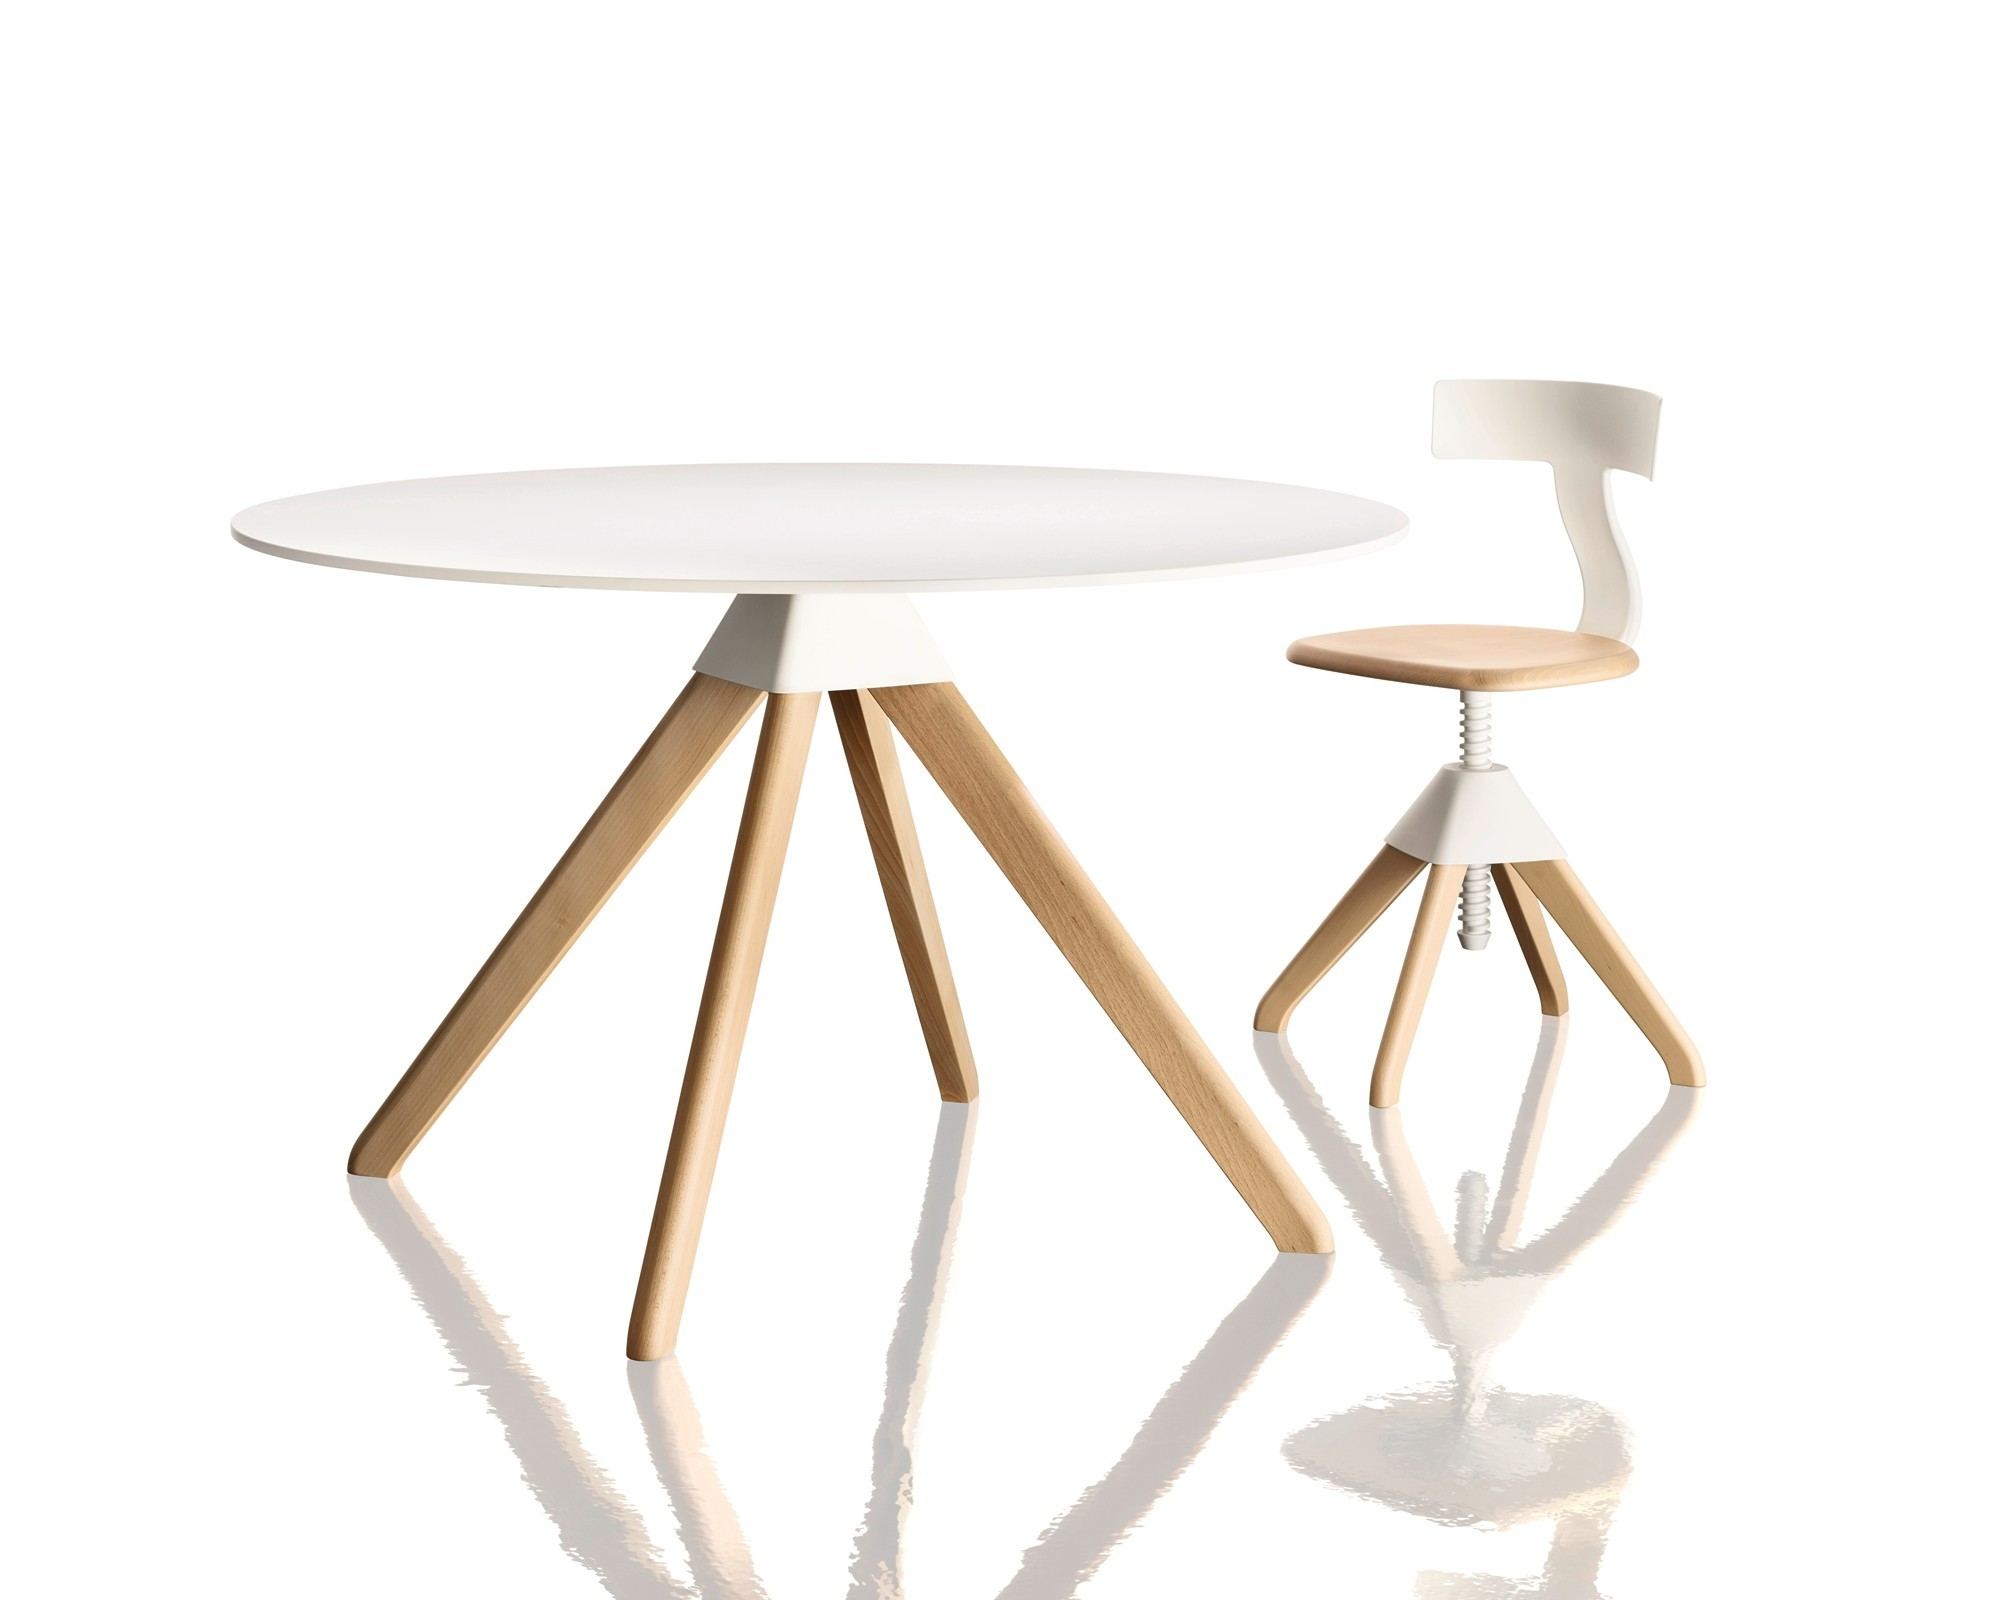 Cuckoo Dining Table – The Wild Bunch